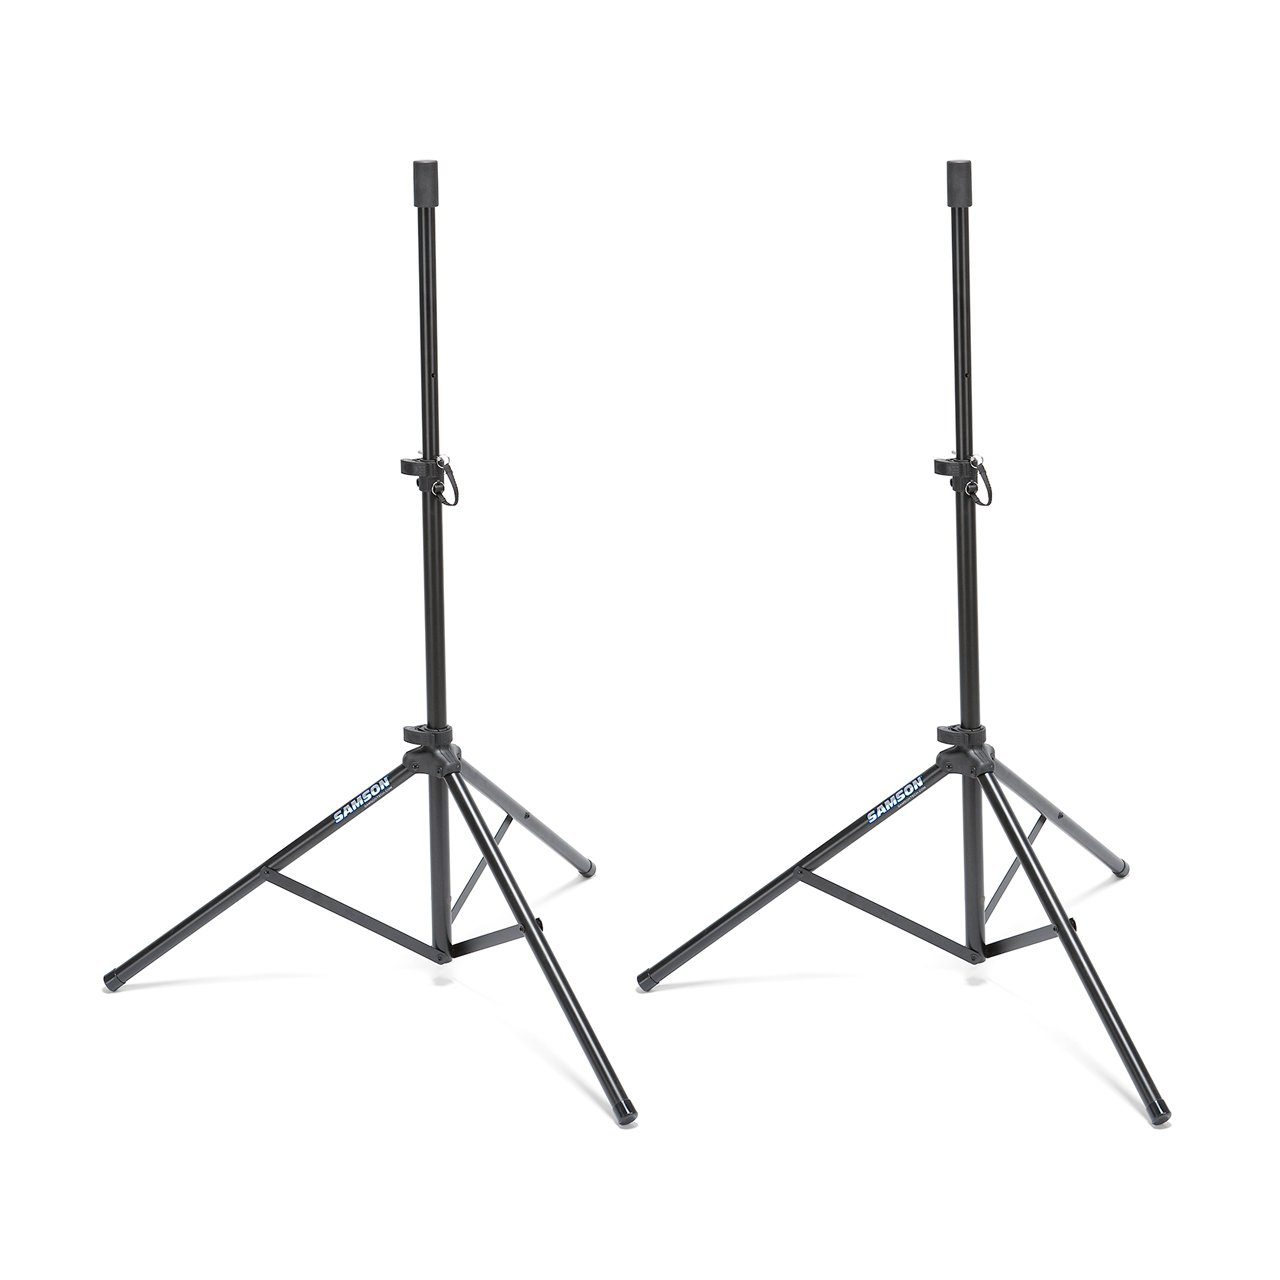 PA Accessories - Samson LS50P - Speaker Stand Set